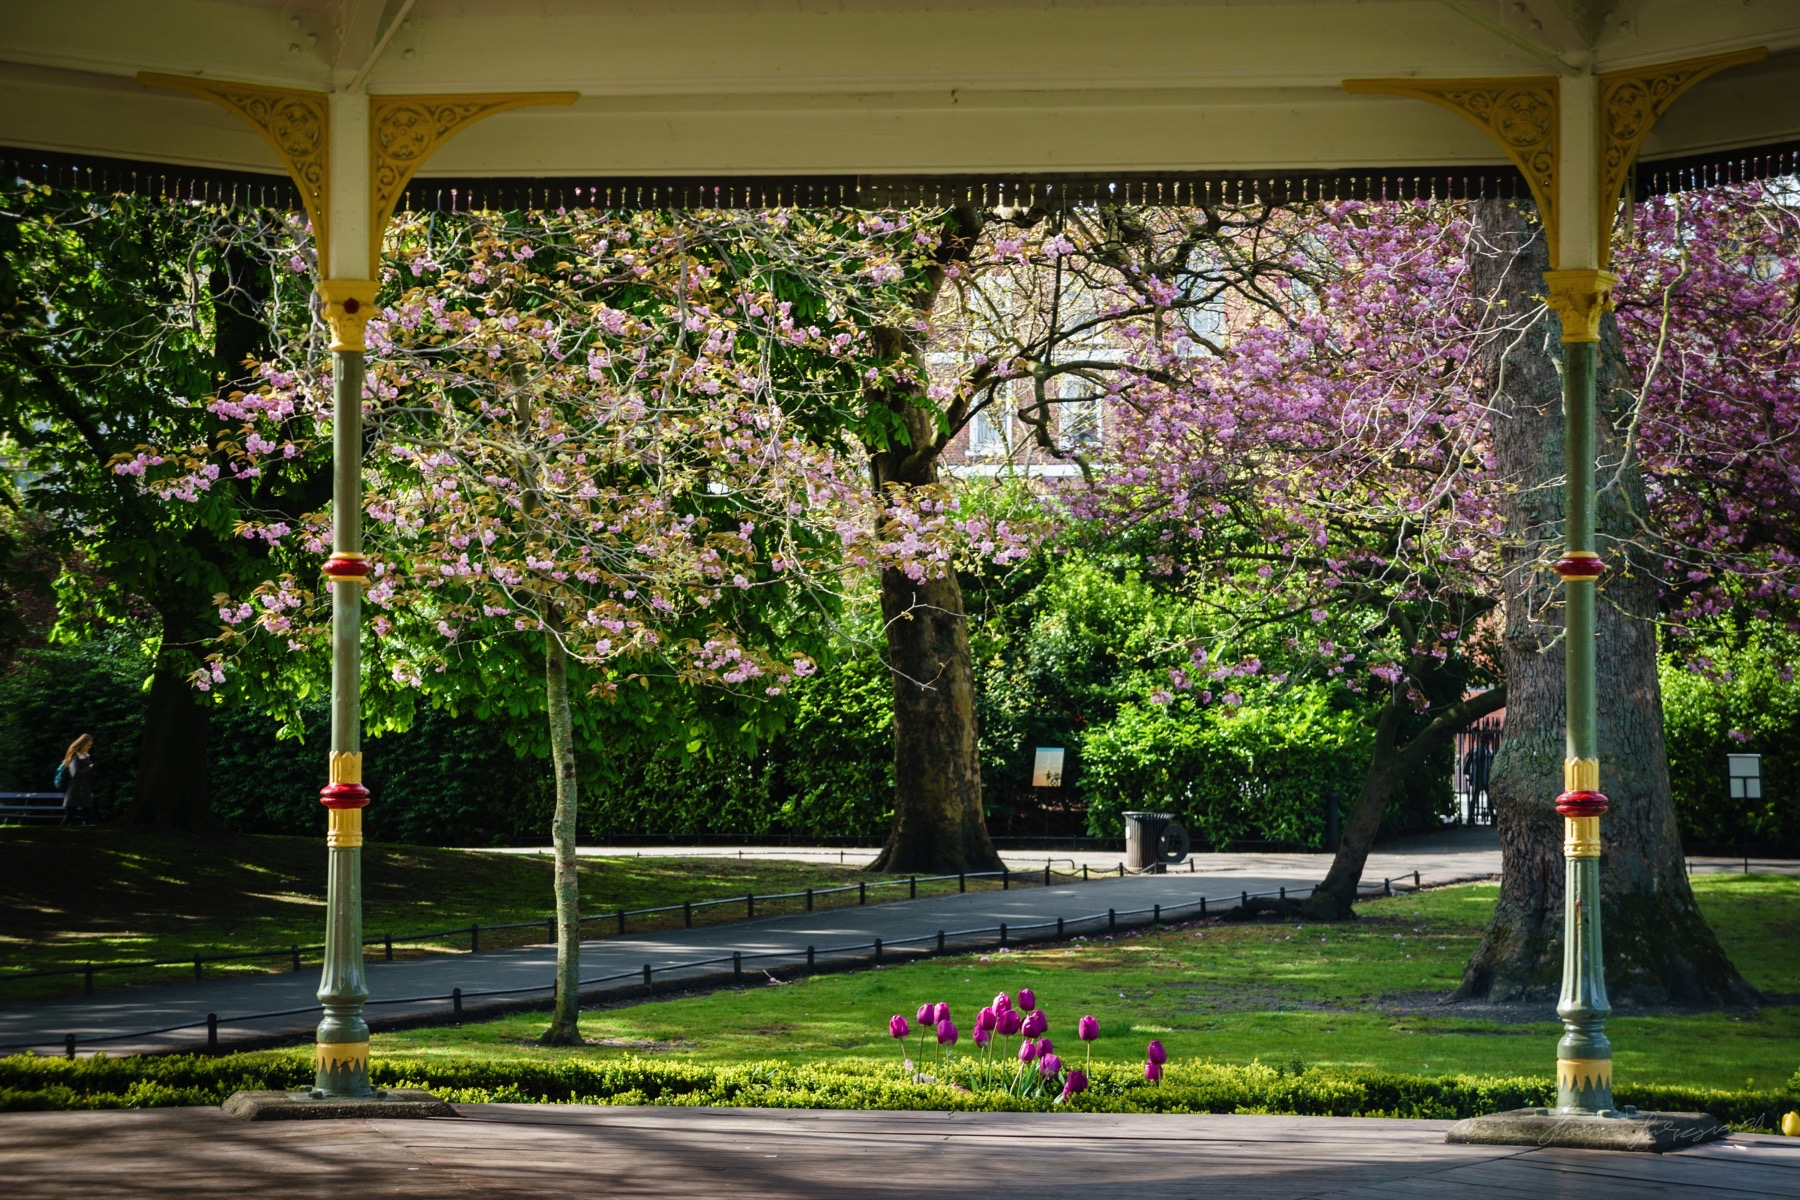 Spring flowers around the Gazebo in Stephen's Green